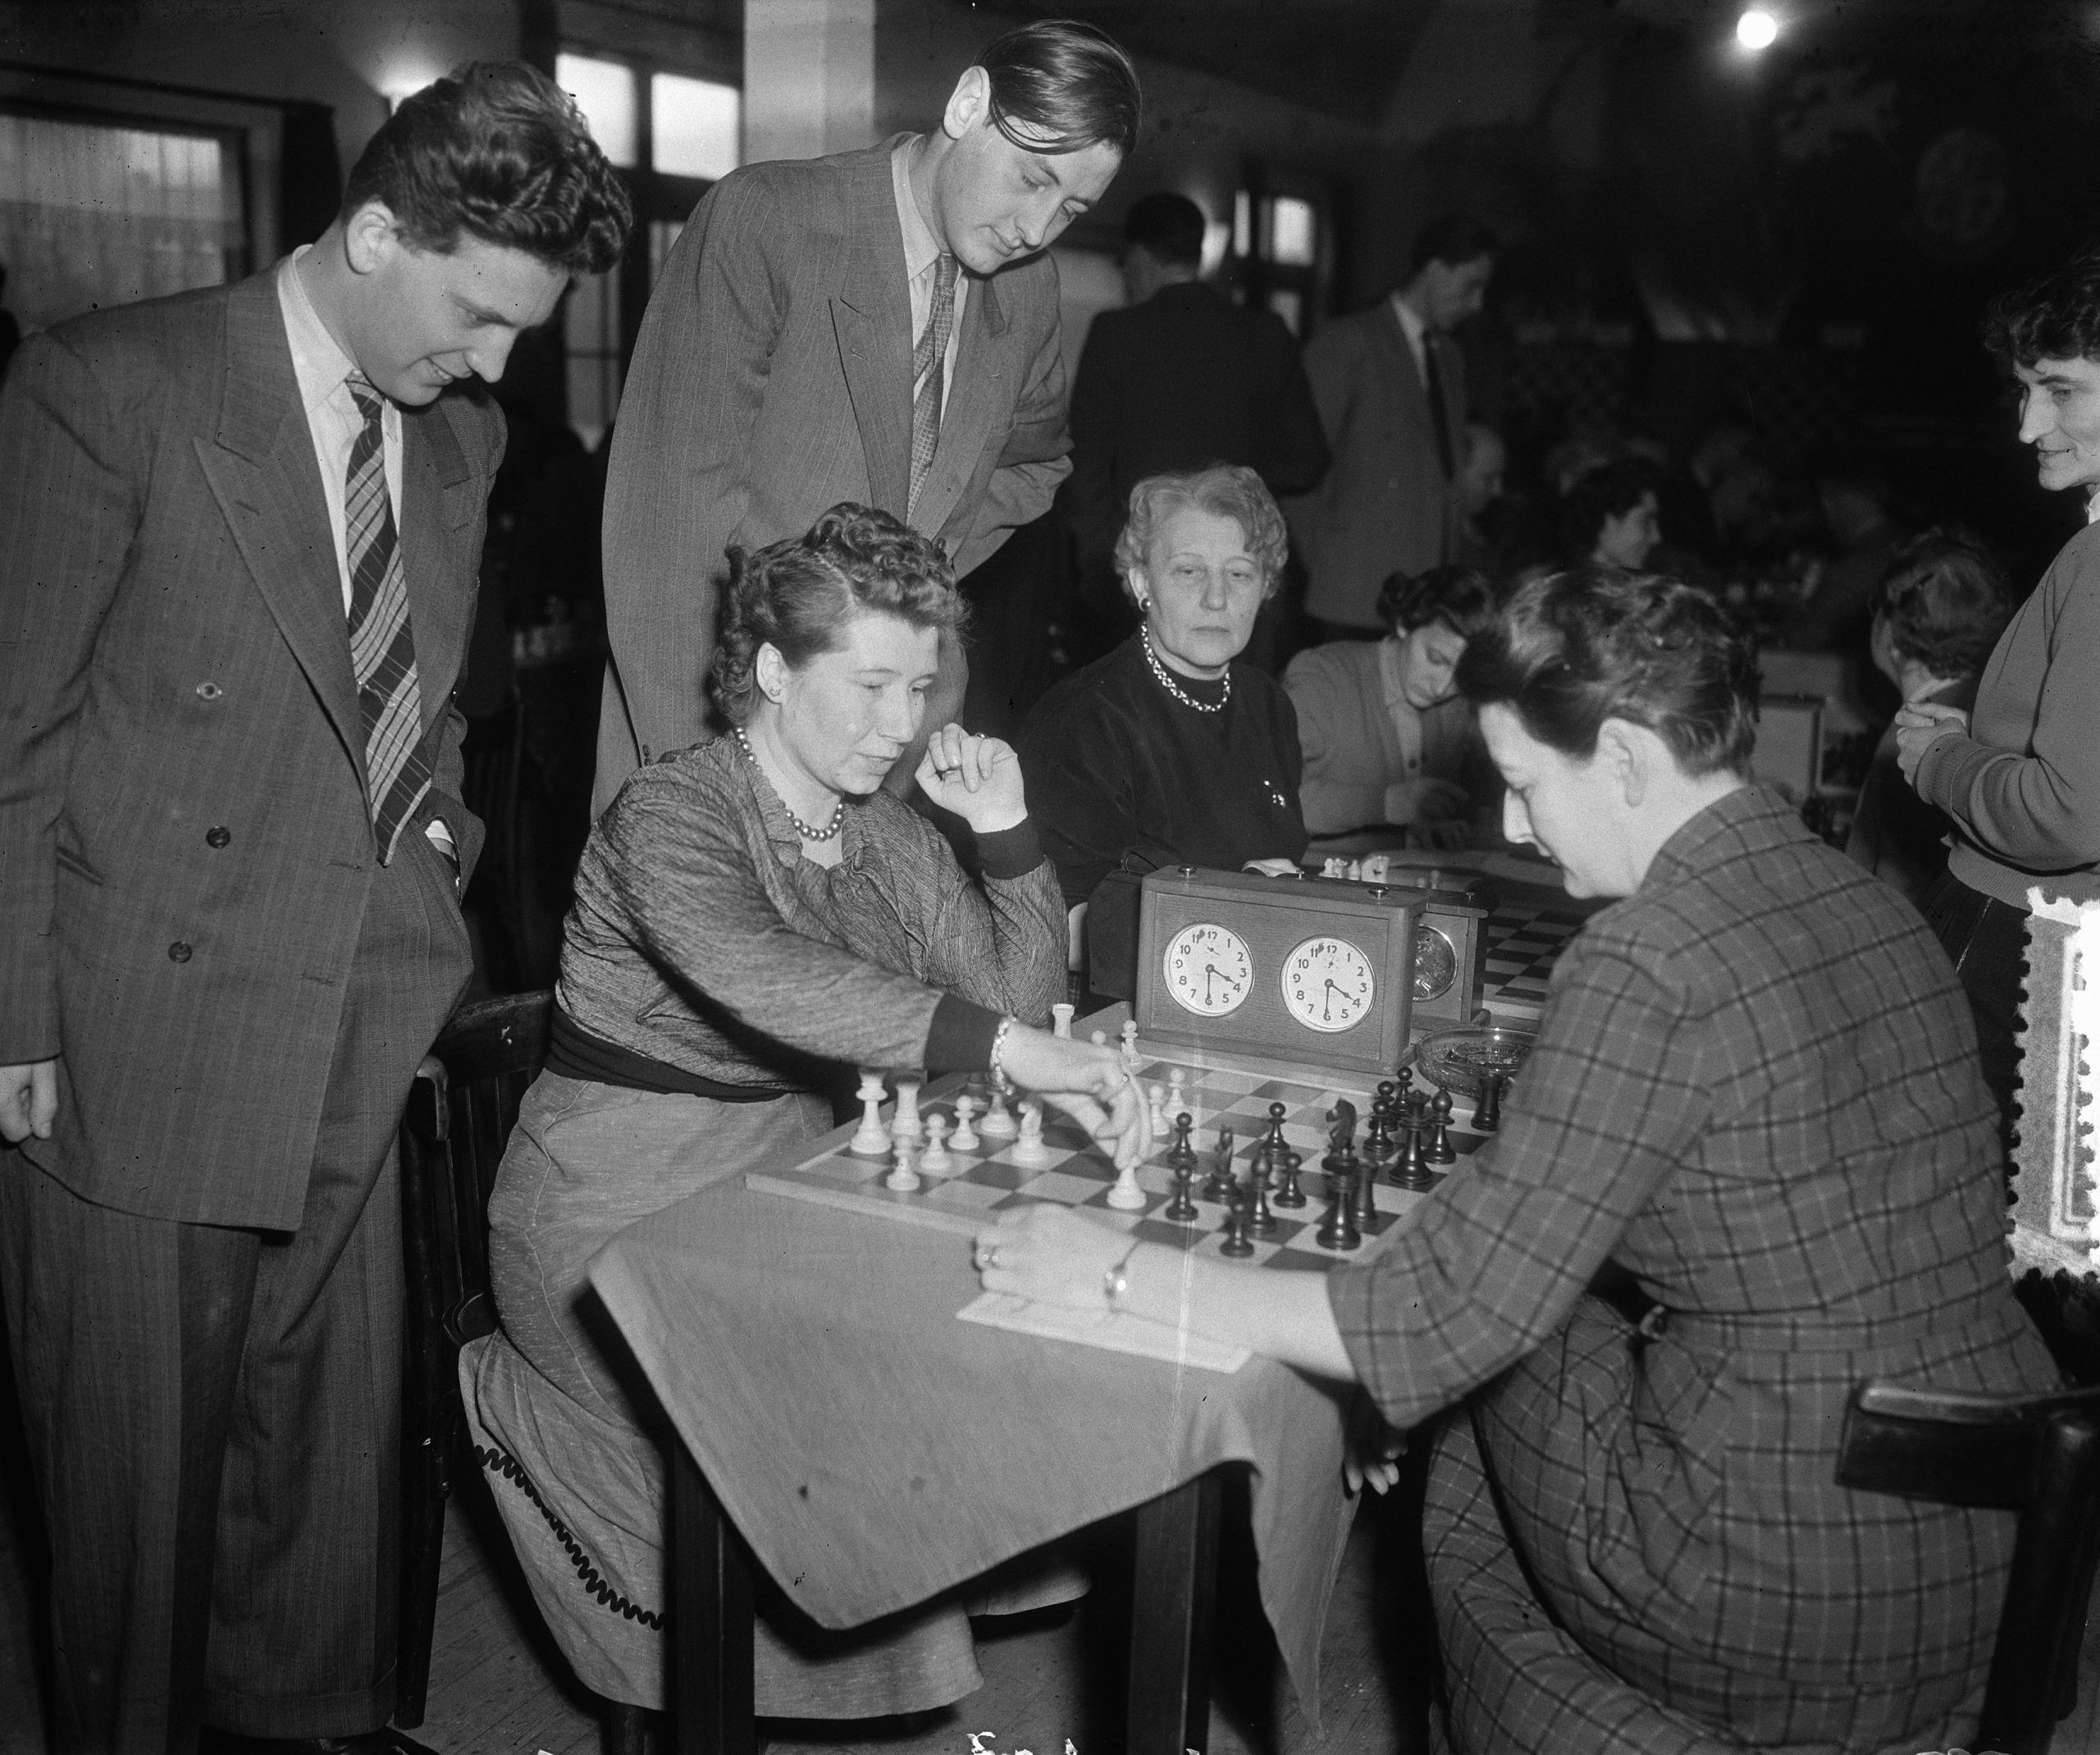 Ladies Chess Tournament Fenny Heemskerk, Rowena Mary Bruce (née Dew), Donner, Architect Date: January 12, 1953 Personal name: Architect, , Bruce, R., Donner, , Heemskerk, Fenny Institution name: Block Chess Tournament - Image ID: 2ARK3JK